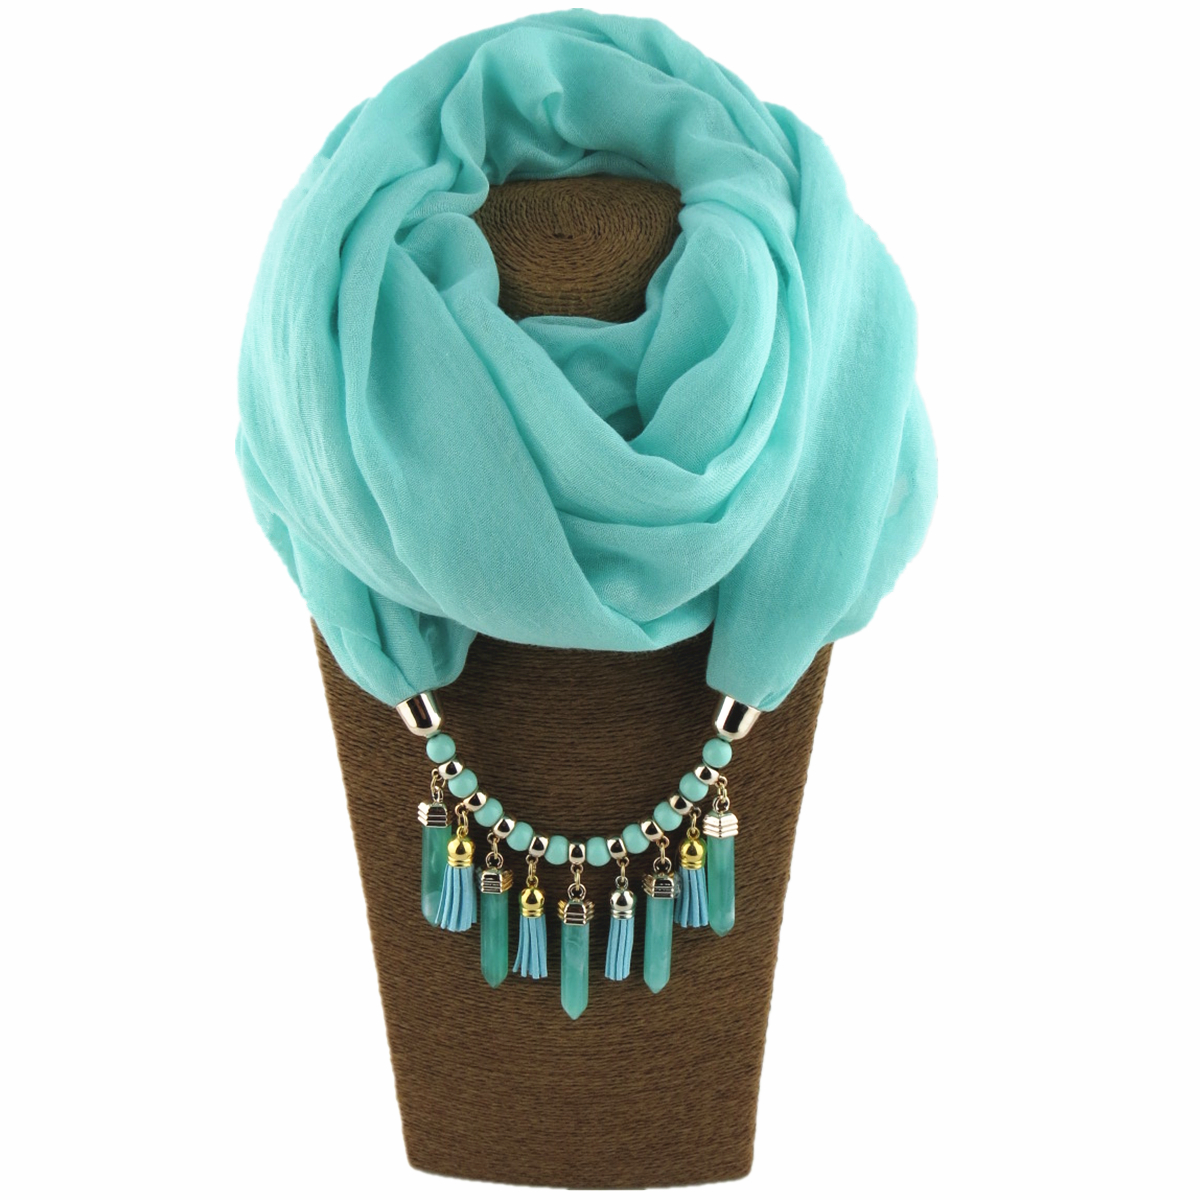 Fashionable Young Women Four Seasons Elegant Design Style Solid Ring Resin Beads Pendant Scarf Jewelry Scarf Free Shipping